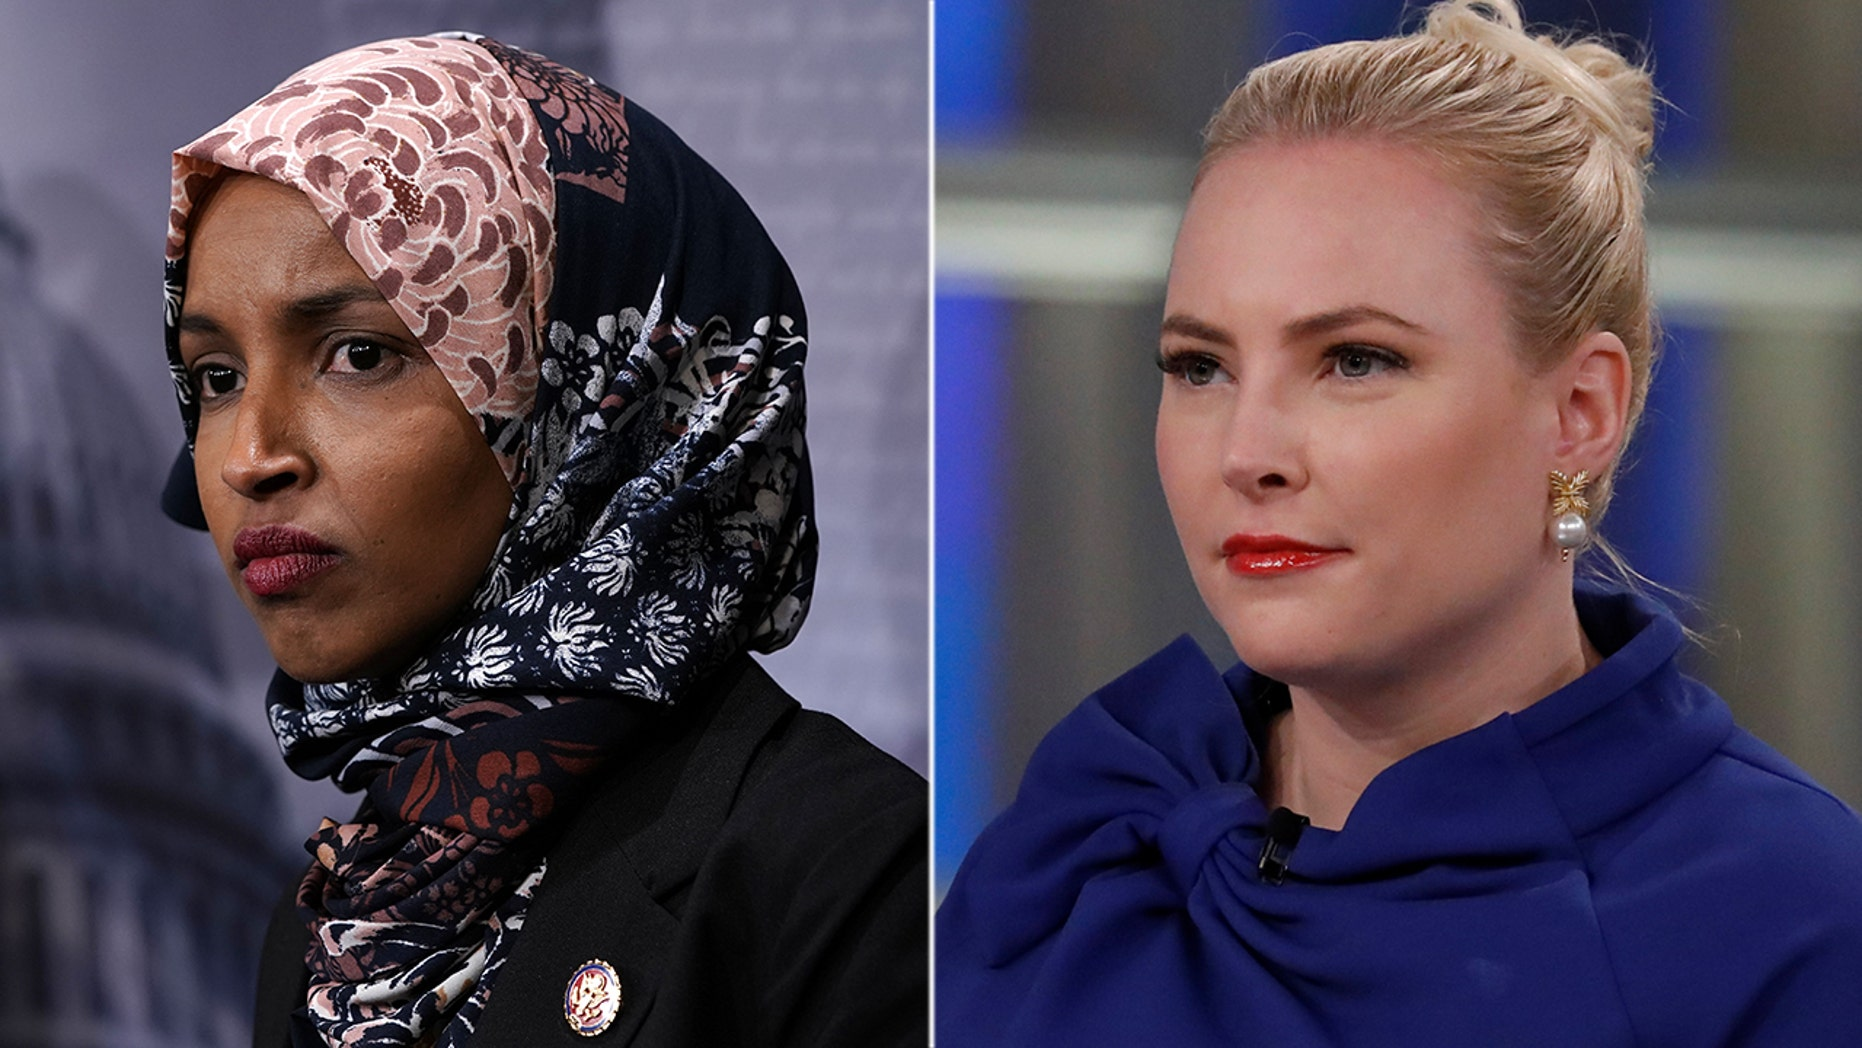 Rep. Ilhan Omar, D-Minn., Appeared to Meghan McCain after